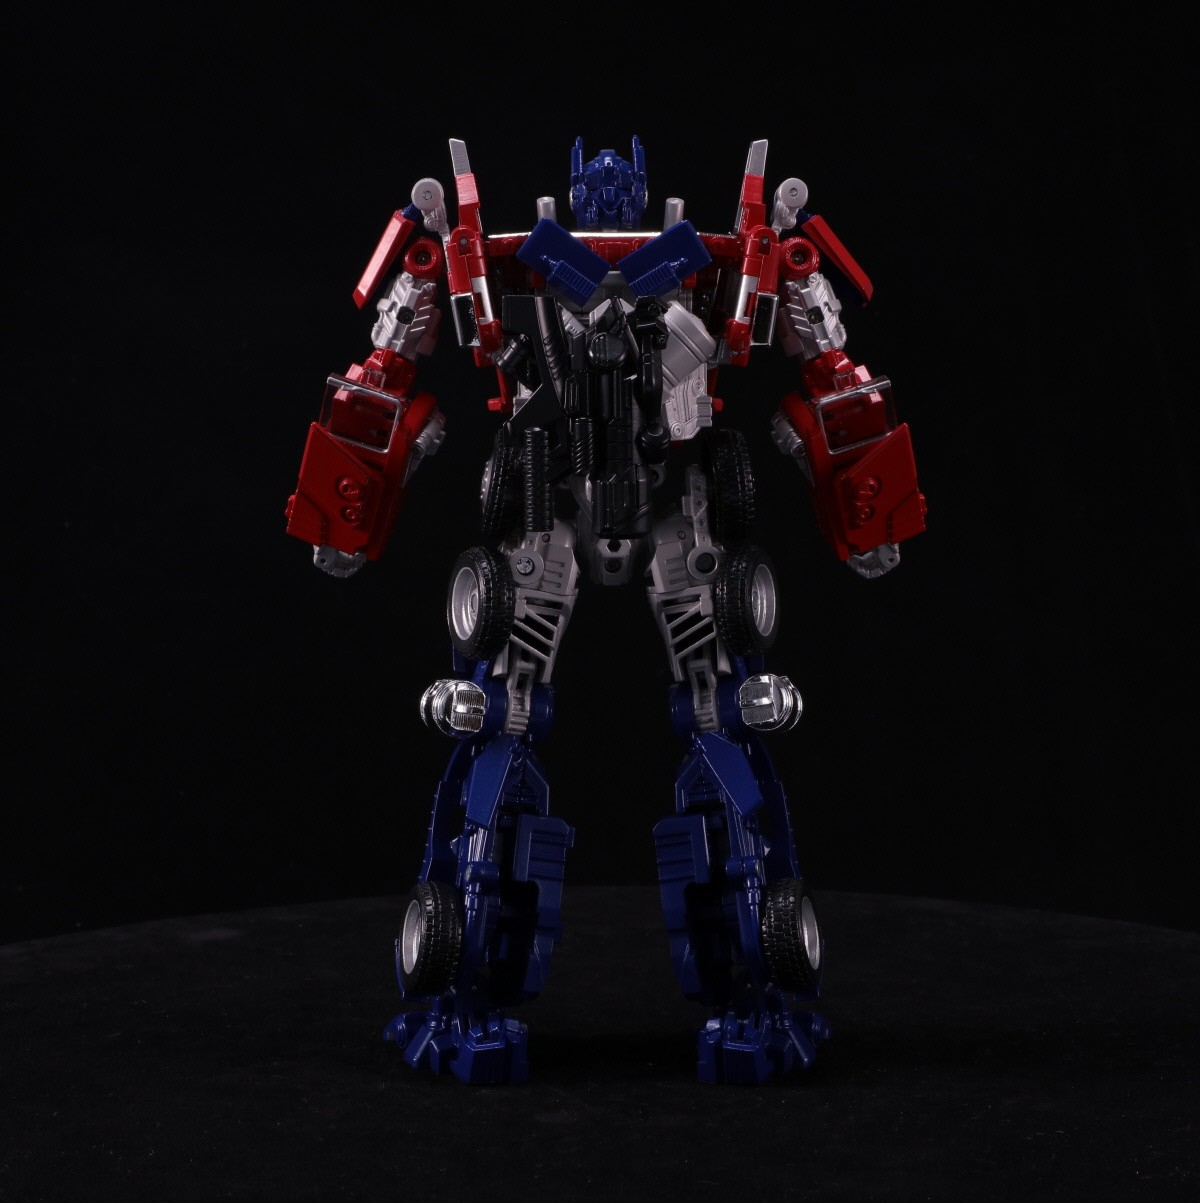 Transformers News: Turnaround Images of Takara Tomy Transformers Bumblebee Movie BB-02 Legendary Optimus Prime